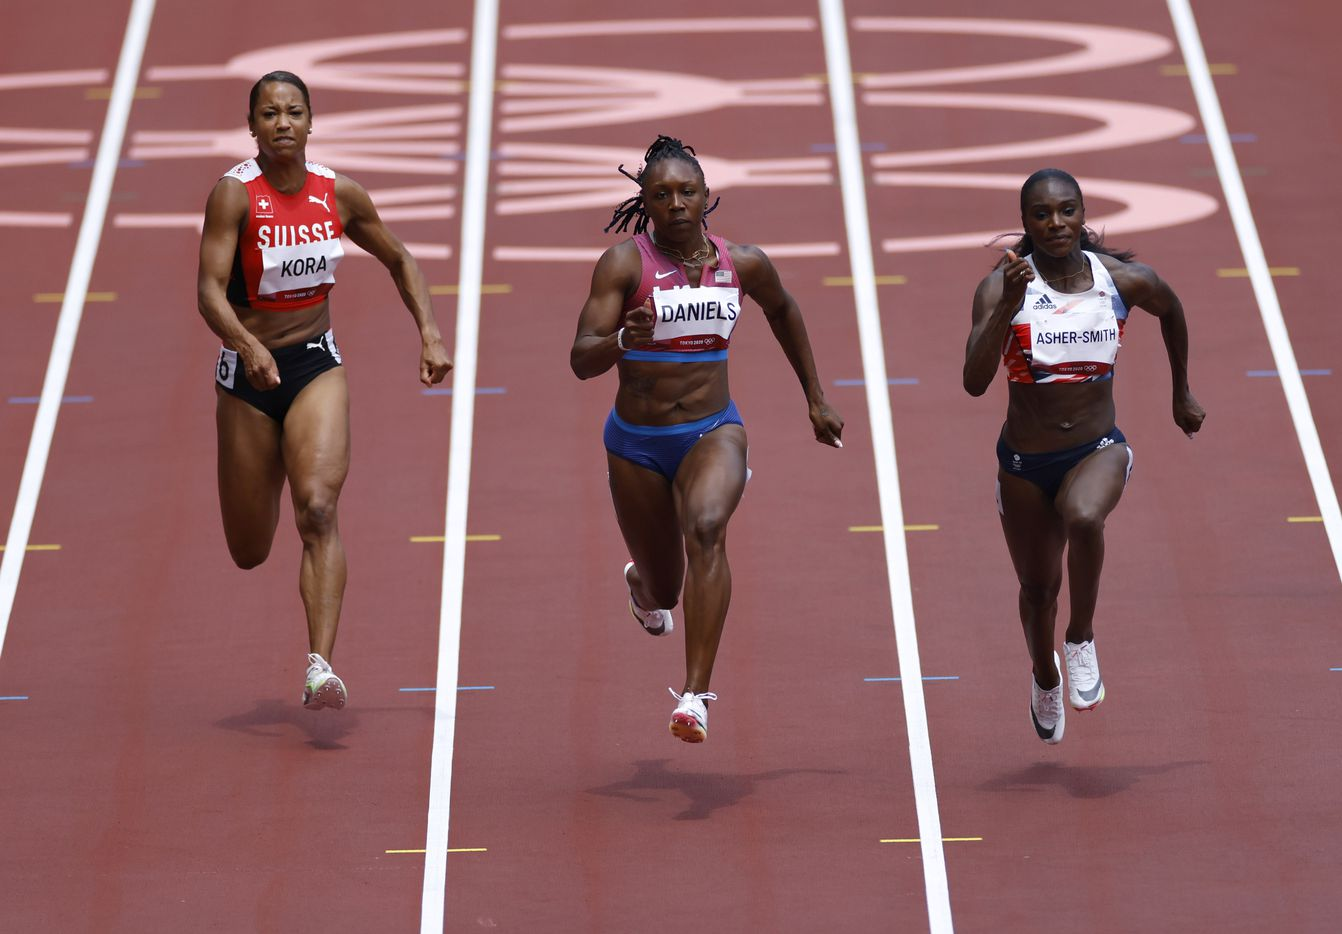 Switzerland's Salome Kora, USA's Teahna Daniels and Great Britain's Dina Asher-Smith compete in the  women's  100 meter race during the postponed 2020 Tokyo Olympics at Olympic Stadium, on Friday, July 30, 2021, in Tokyo, Japan. Daniels finished with a time of 11.04 seconds to advance to the next round. (Vernon Bryant/The Dallas Morning News)